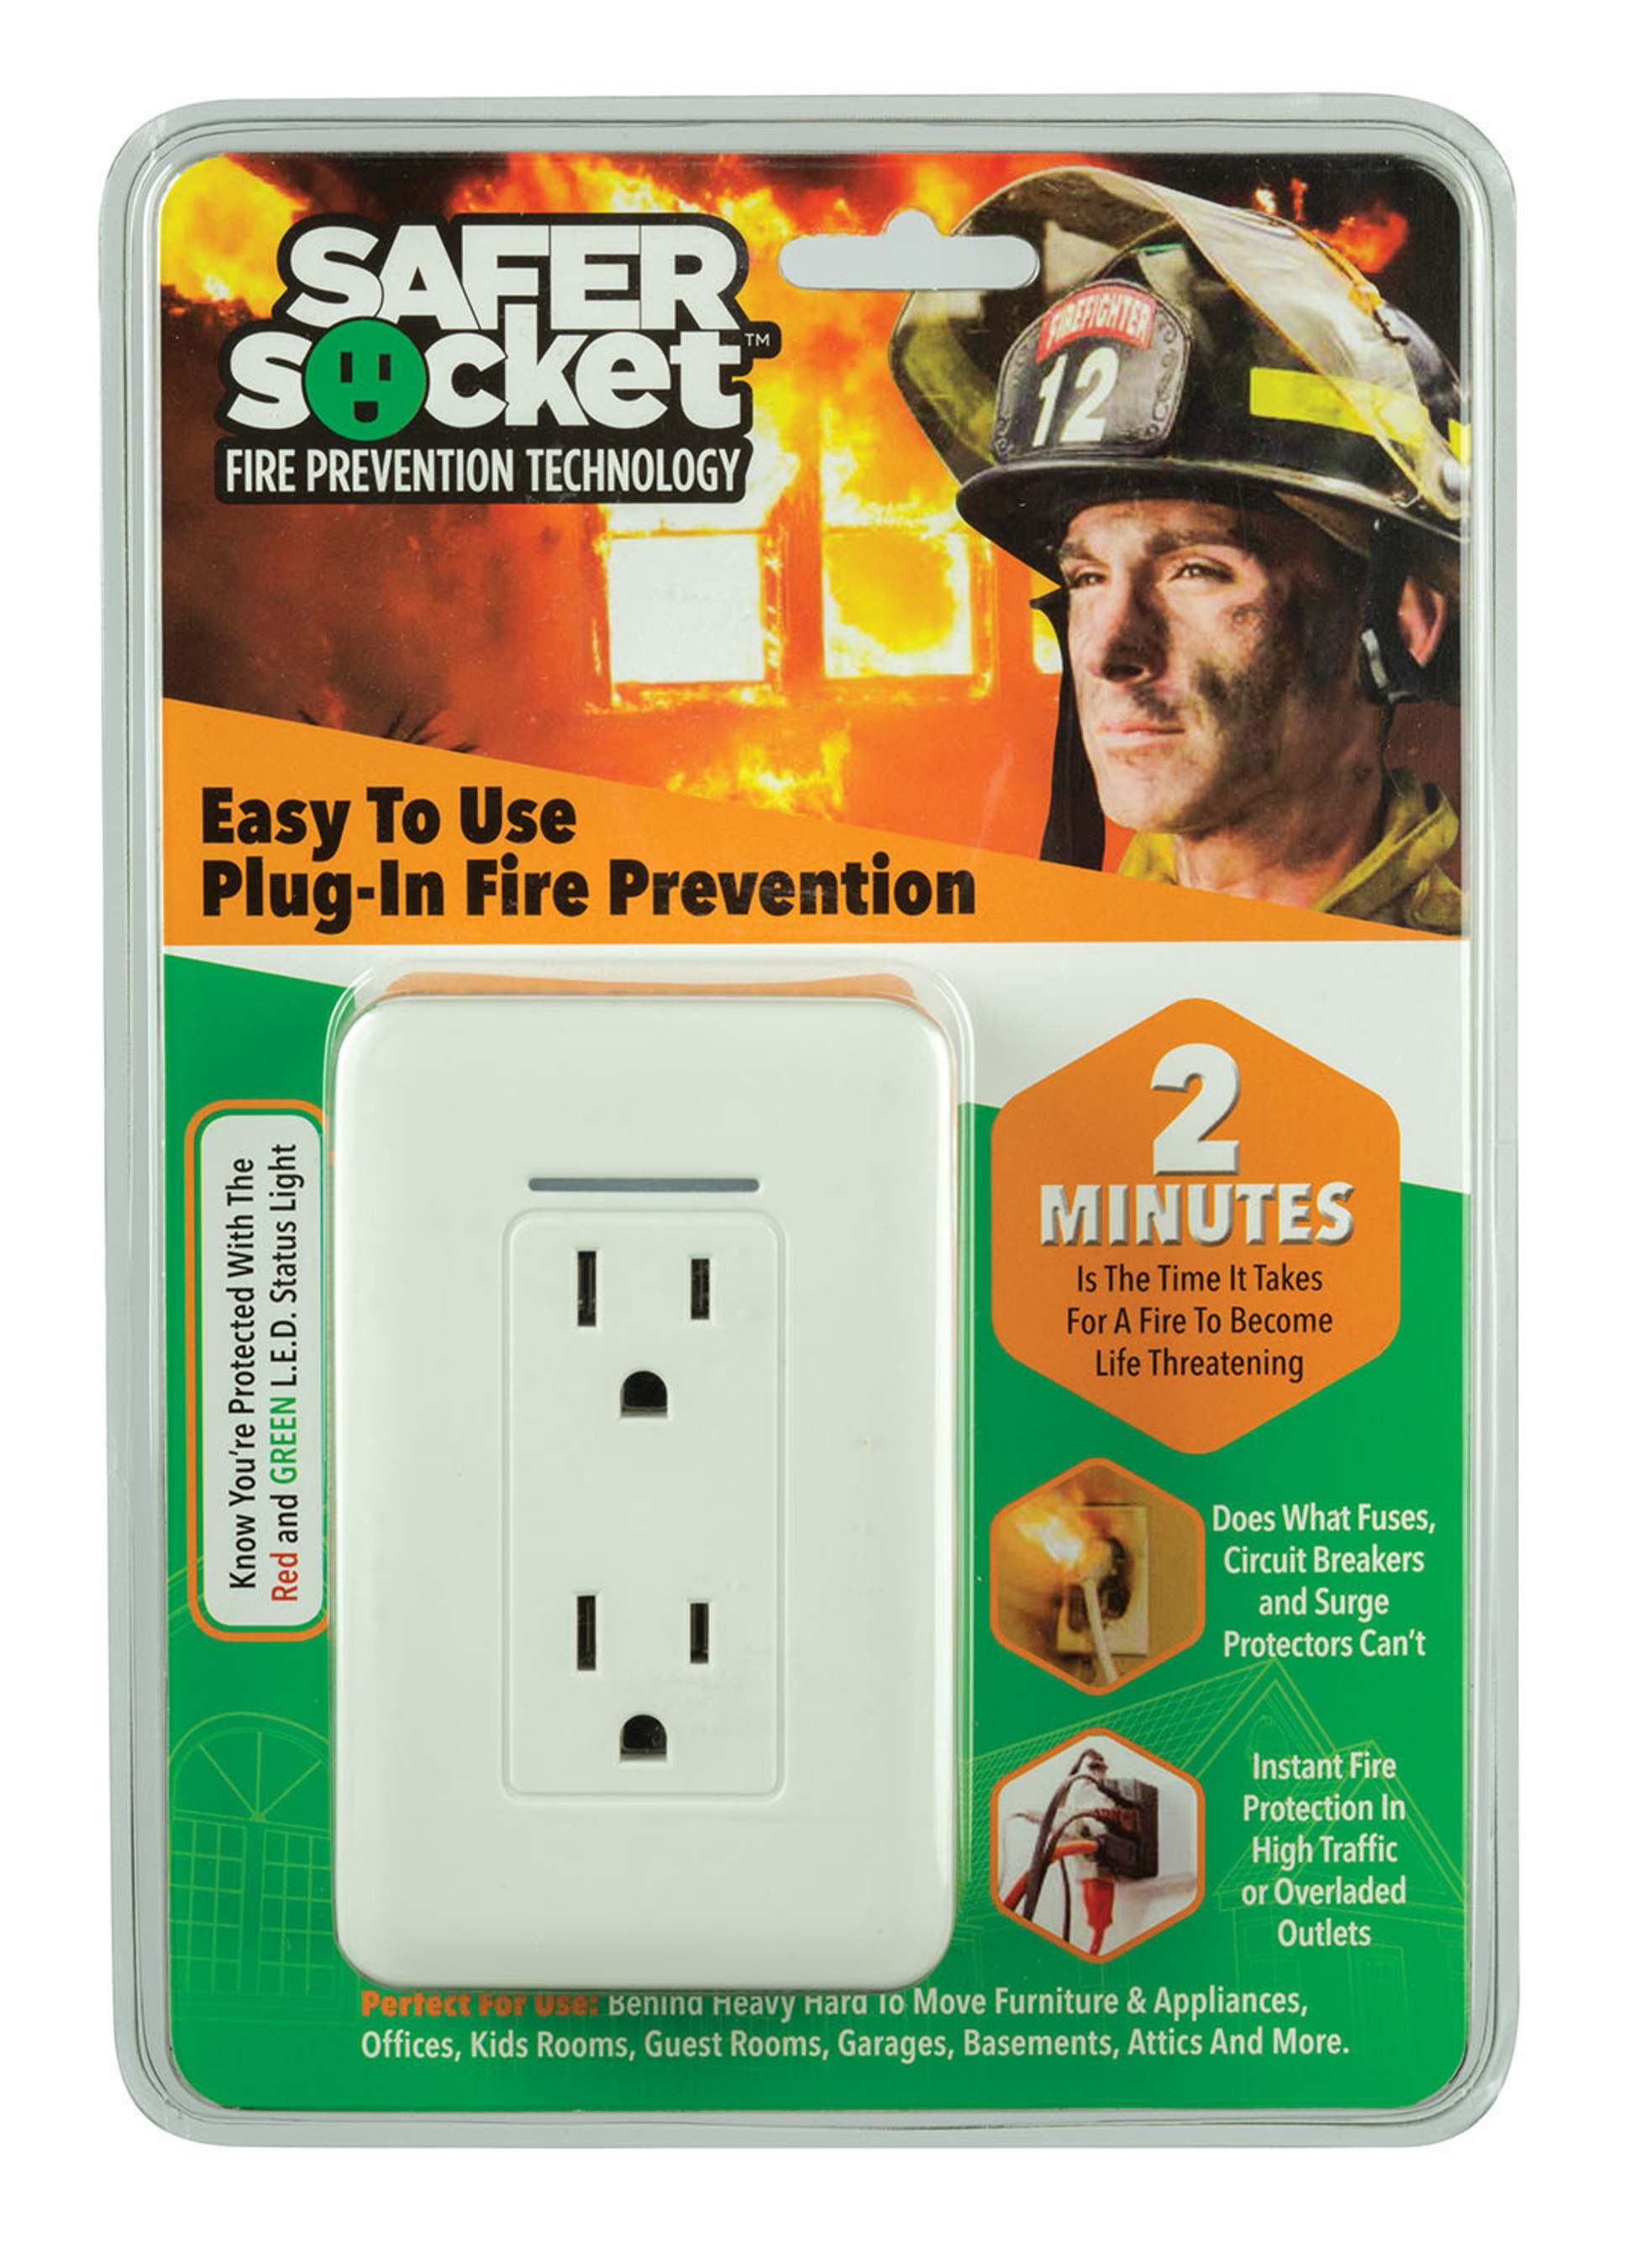 Twin-Star International Makes Safer Socket™ Available in Retail Stores